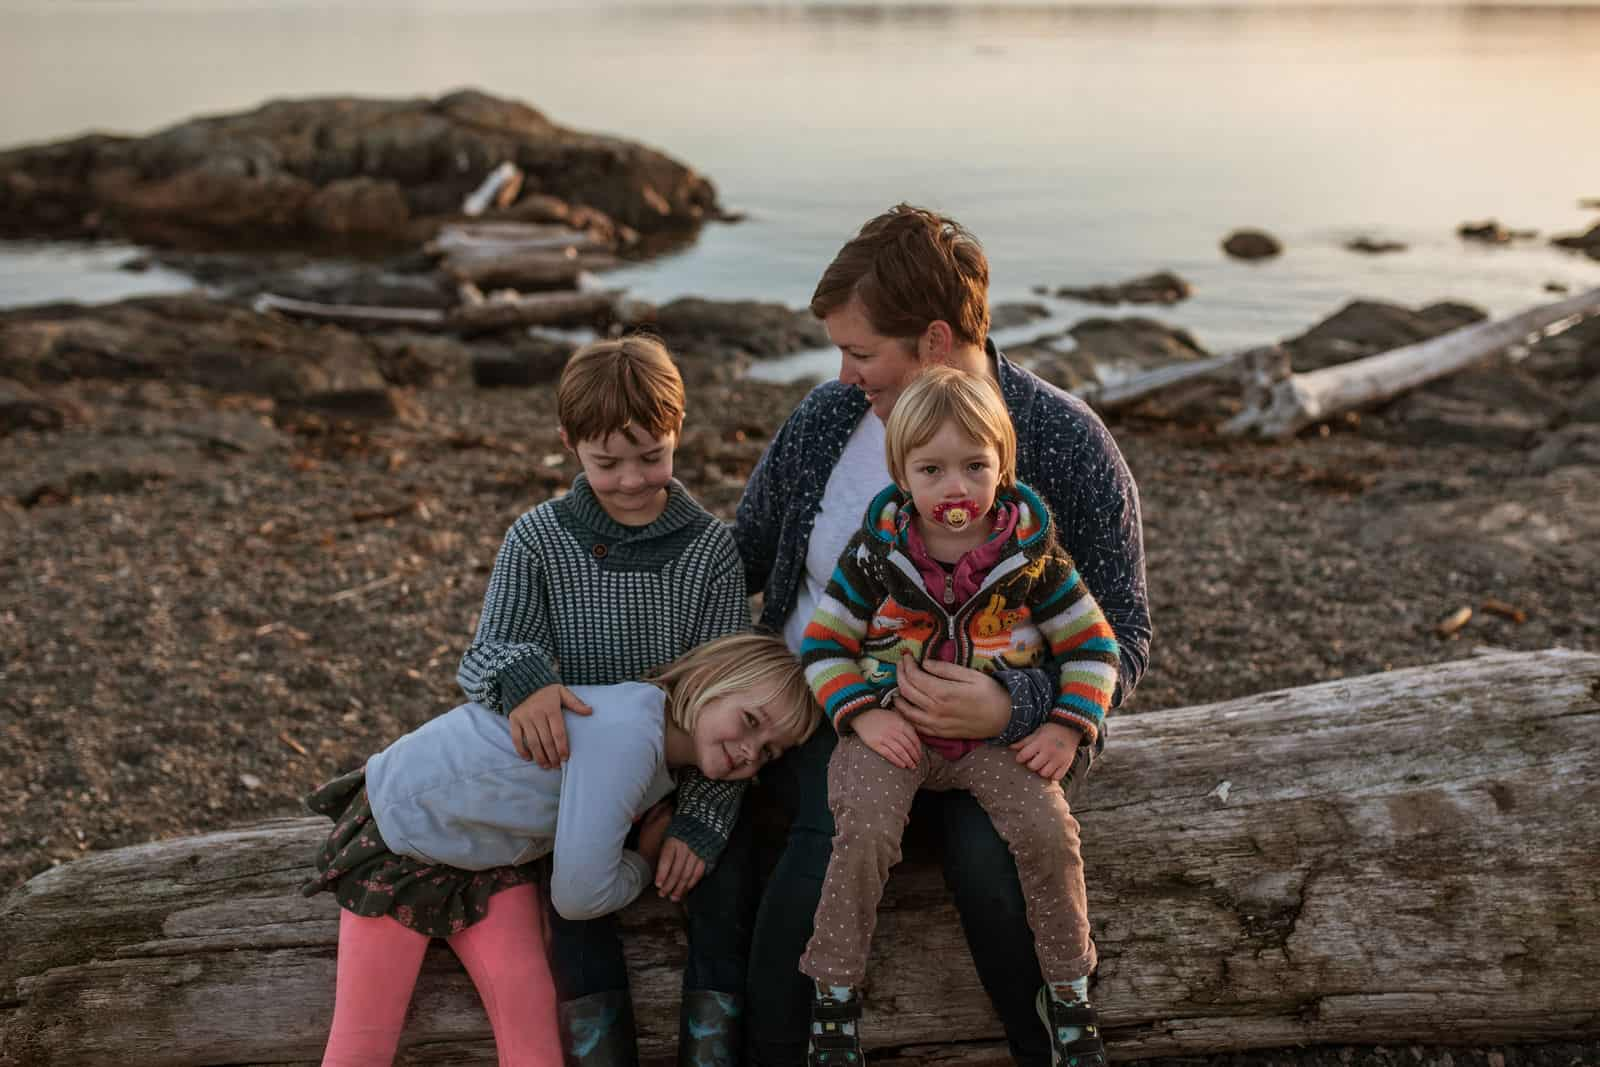 Family poses for a photo on a driftwood log at Cattle Point in Victoria, BC.